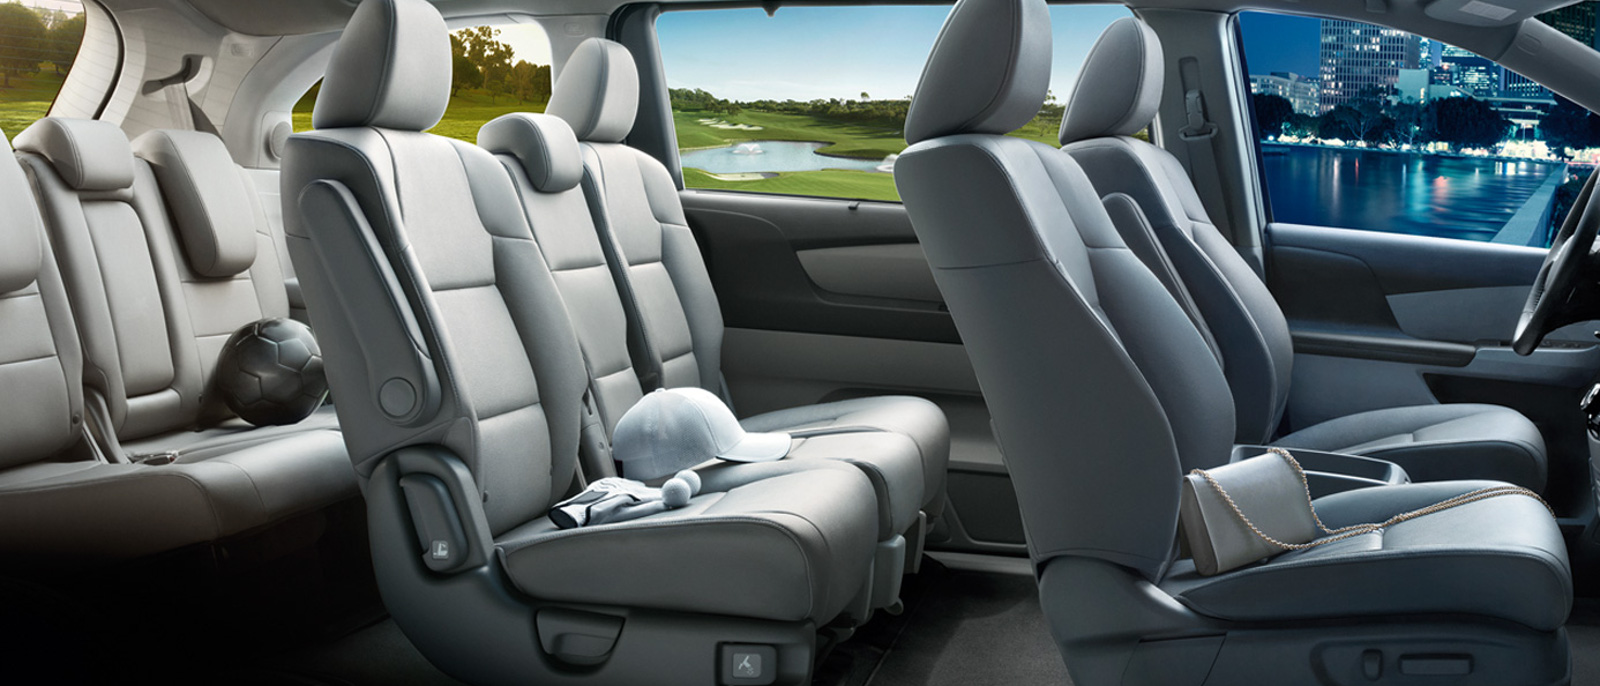 2016 Honda Odyssey Interior Design And Features